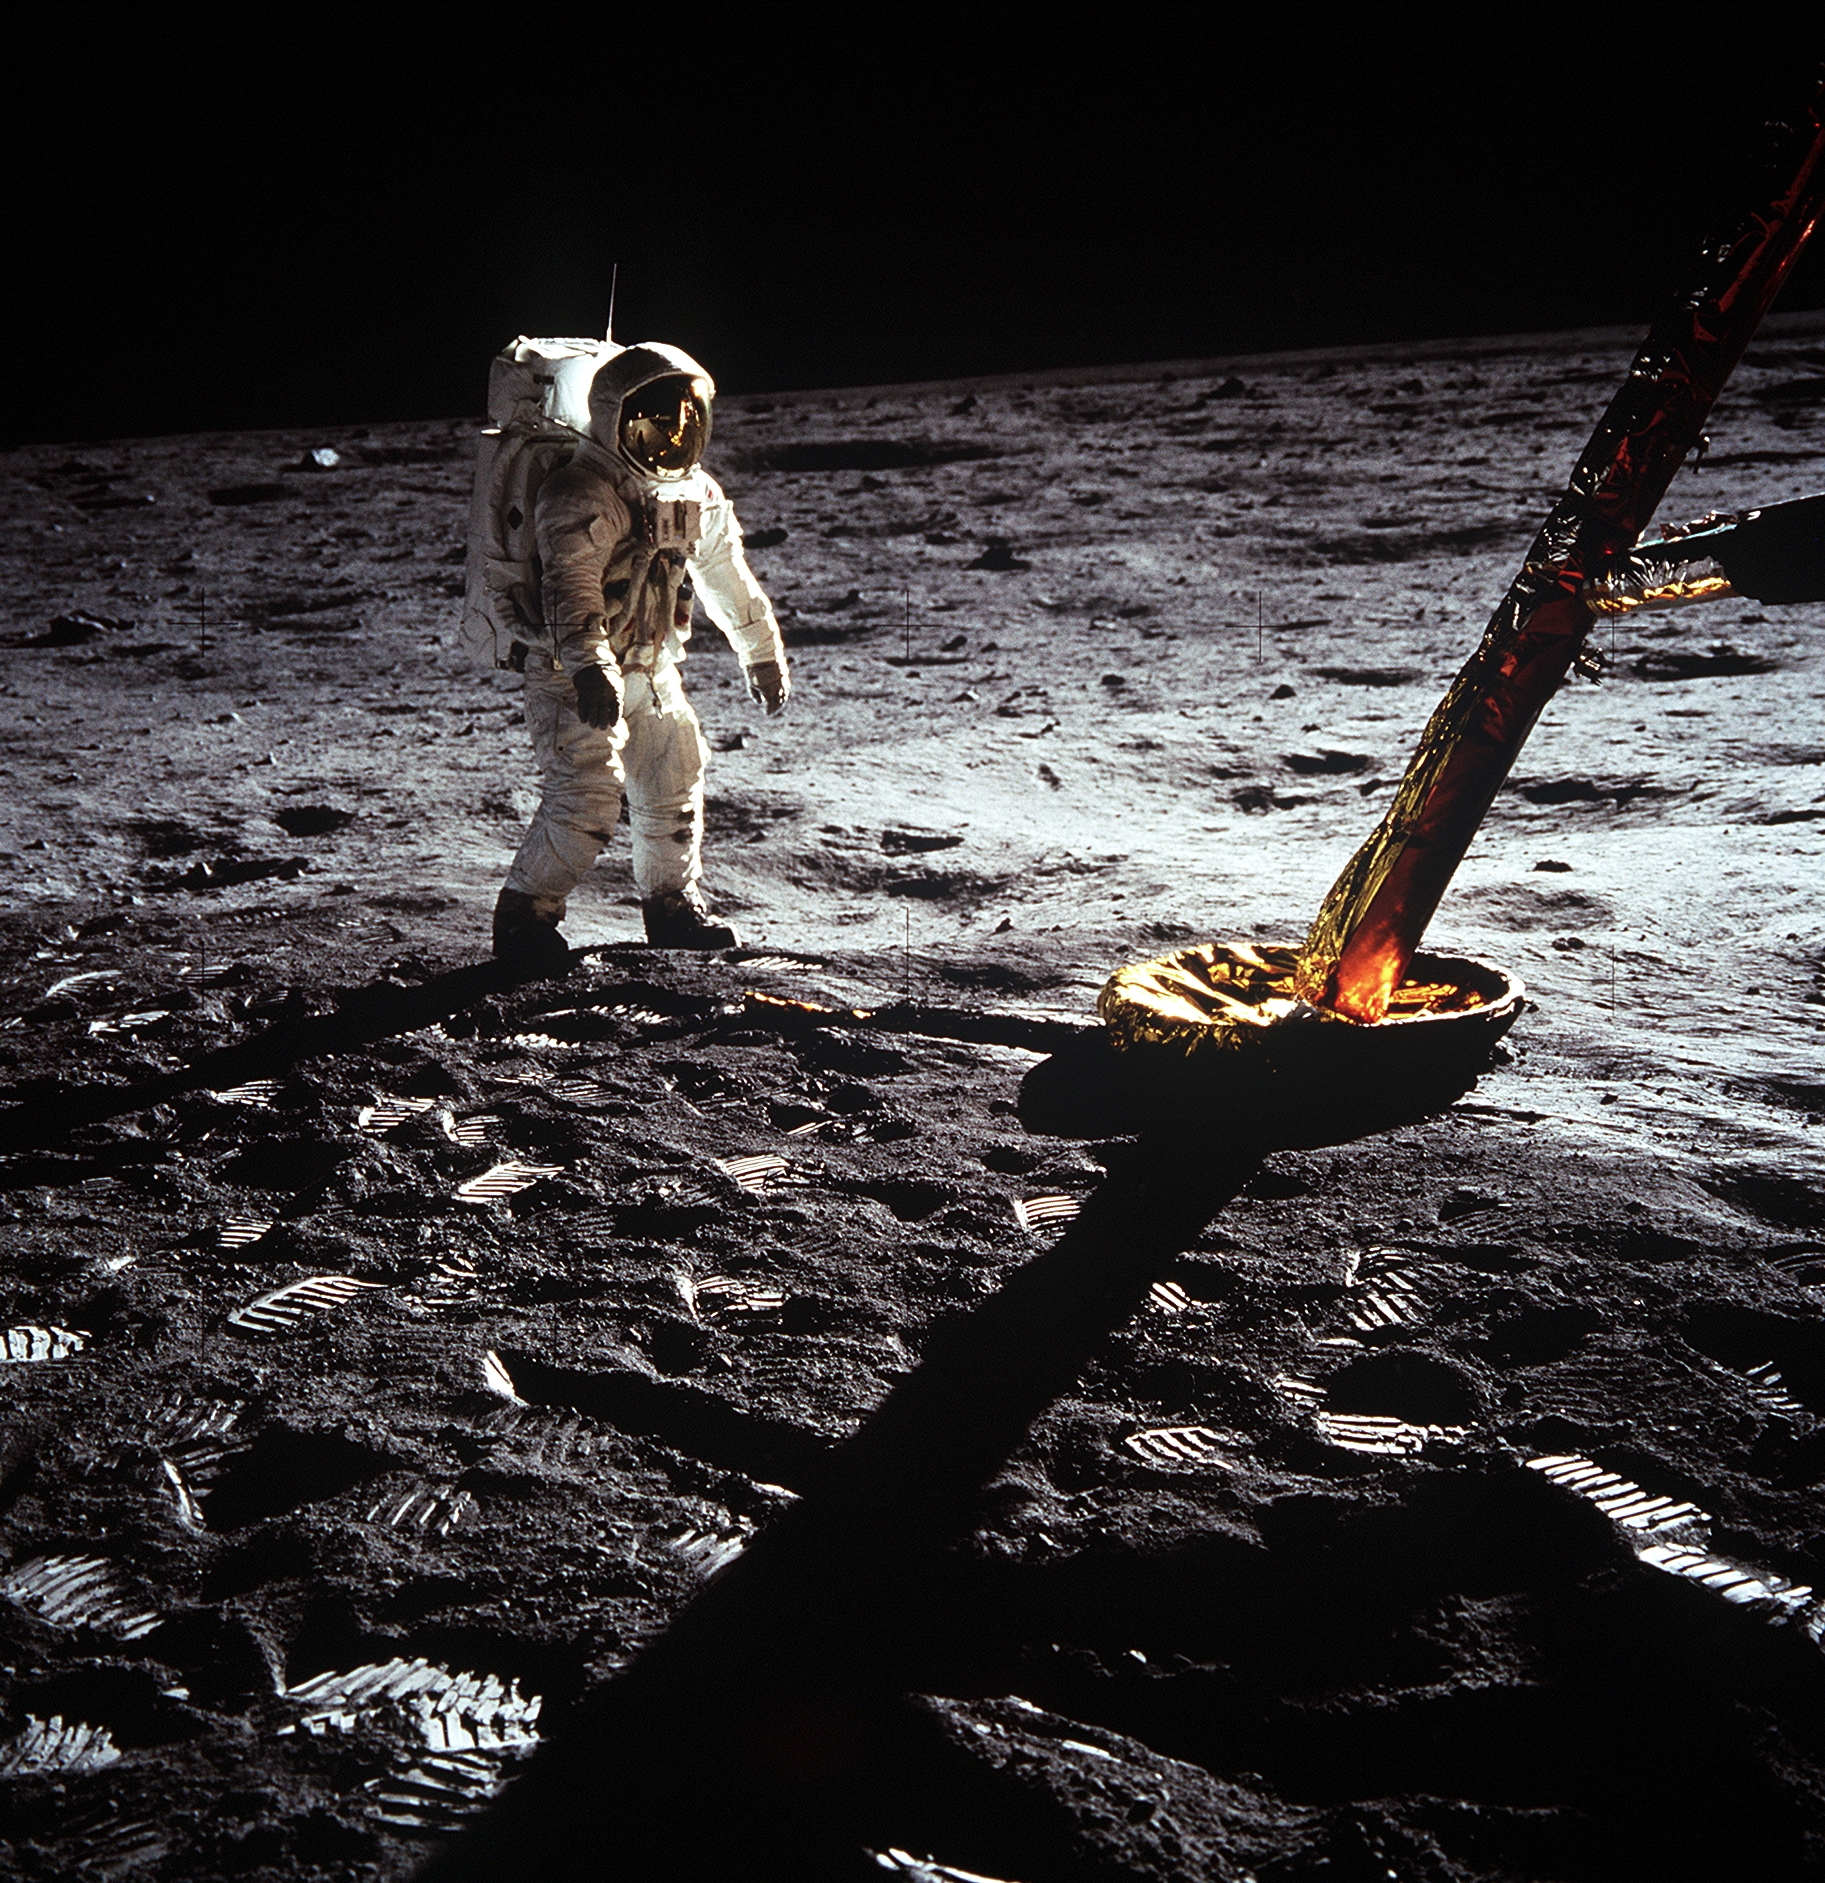 Our theme this summer is to celebrate the 50th anniversary of the Moon Landing!